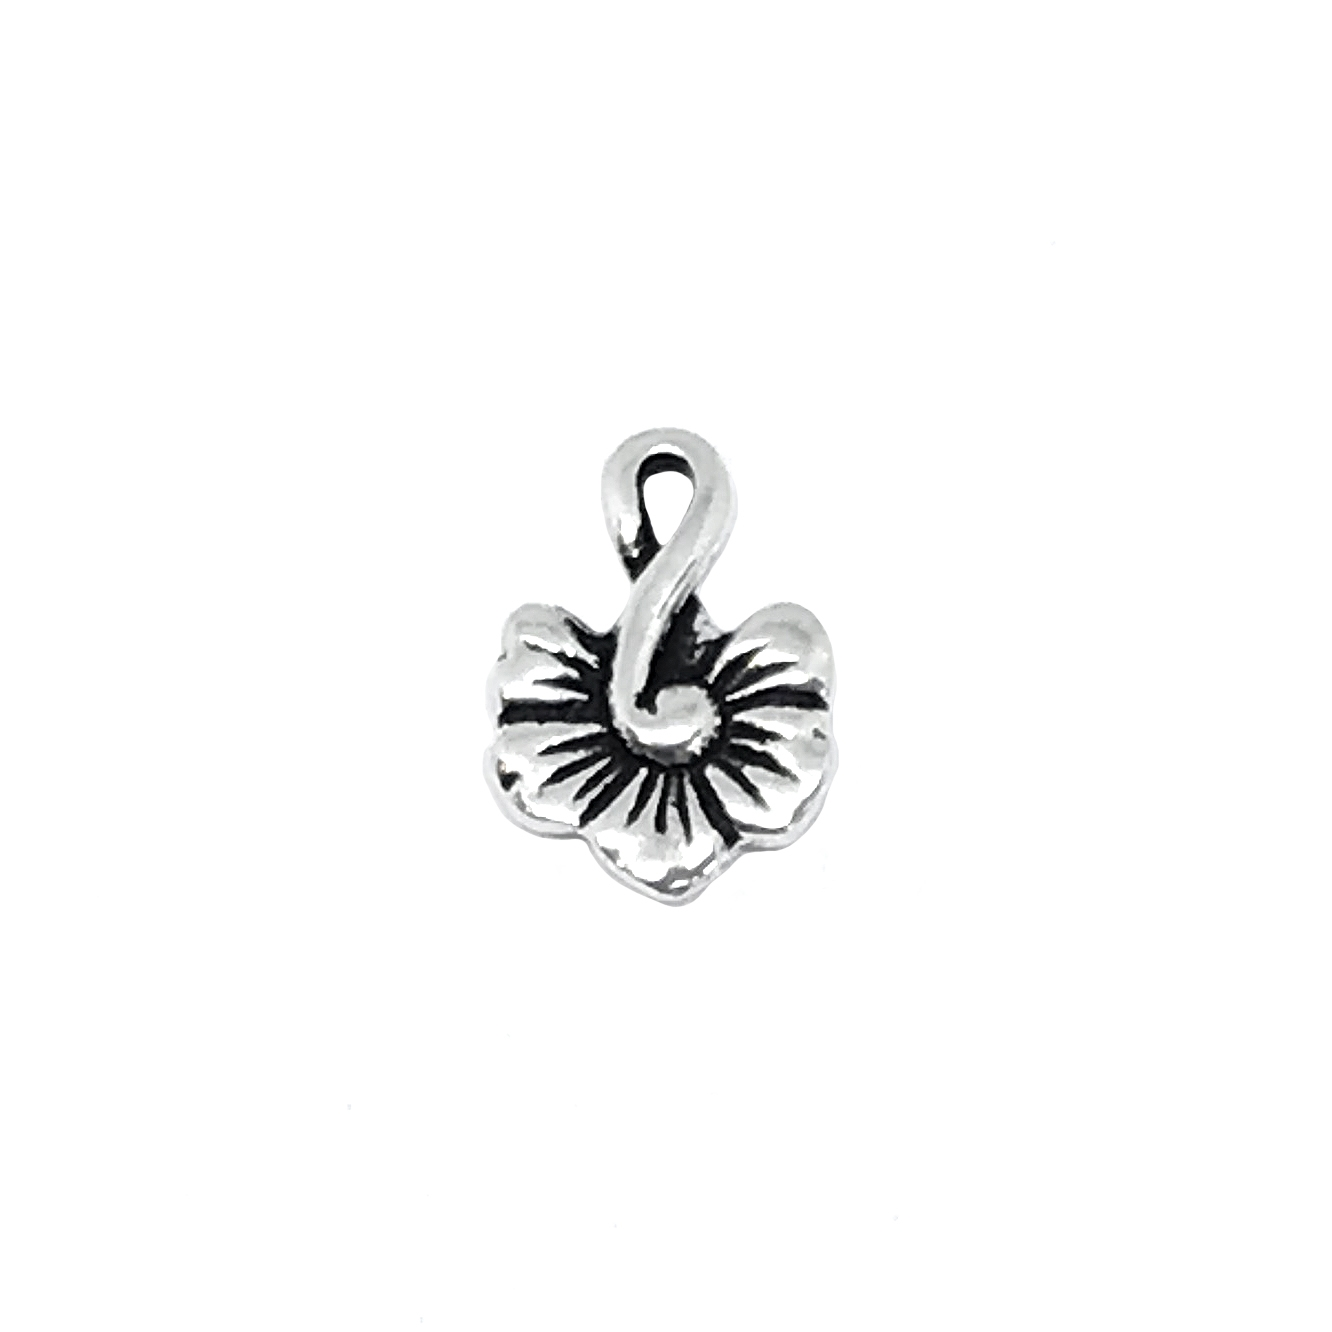 Flower Blossom Charm, Antique Silver, Ear Drop, 01164, flower charm, black antiquing, flower jewelry,  jewelry making supplies, vintage jewelry supplies, 12x16mm, charms